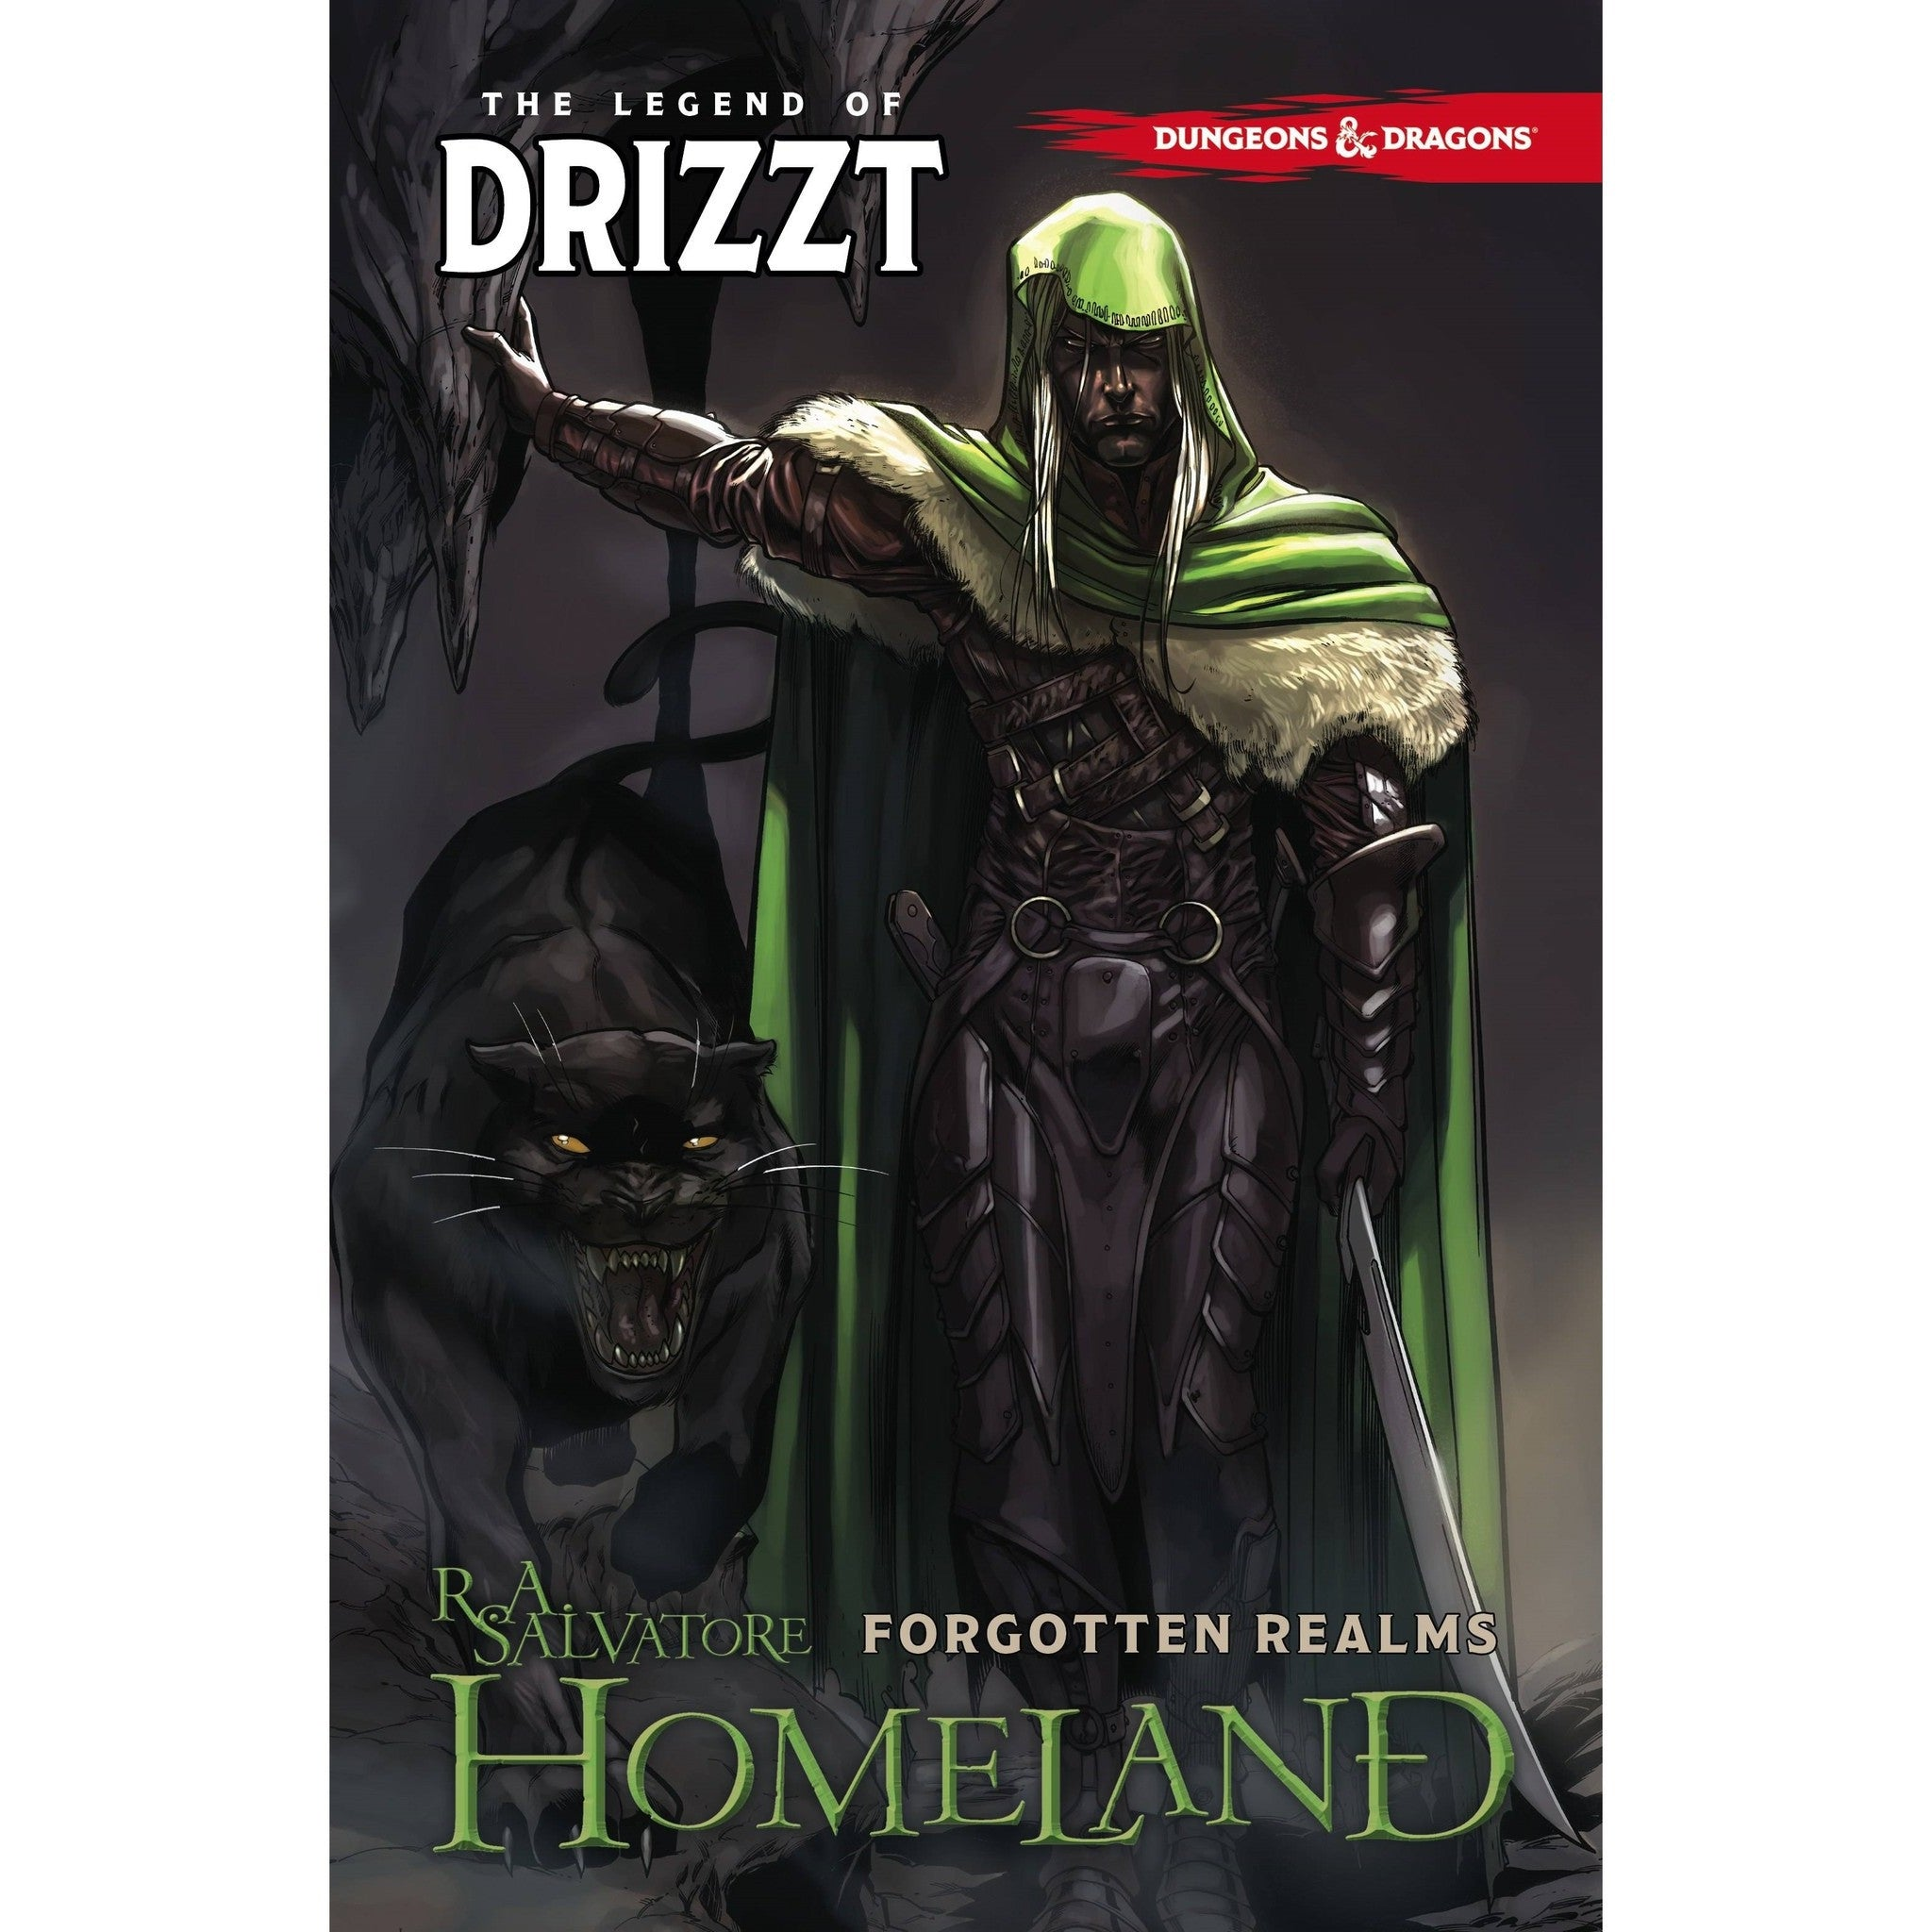 Forgotten Realms The Legend of Drizzt Vol. 1 Homestead TP Uncanny!